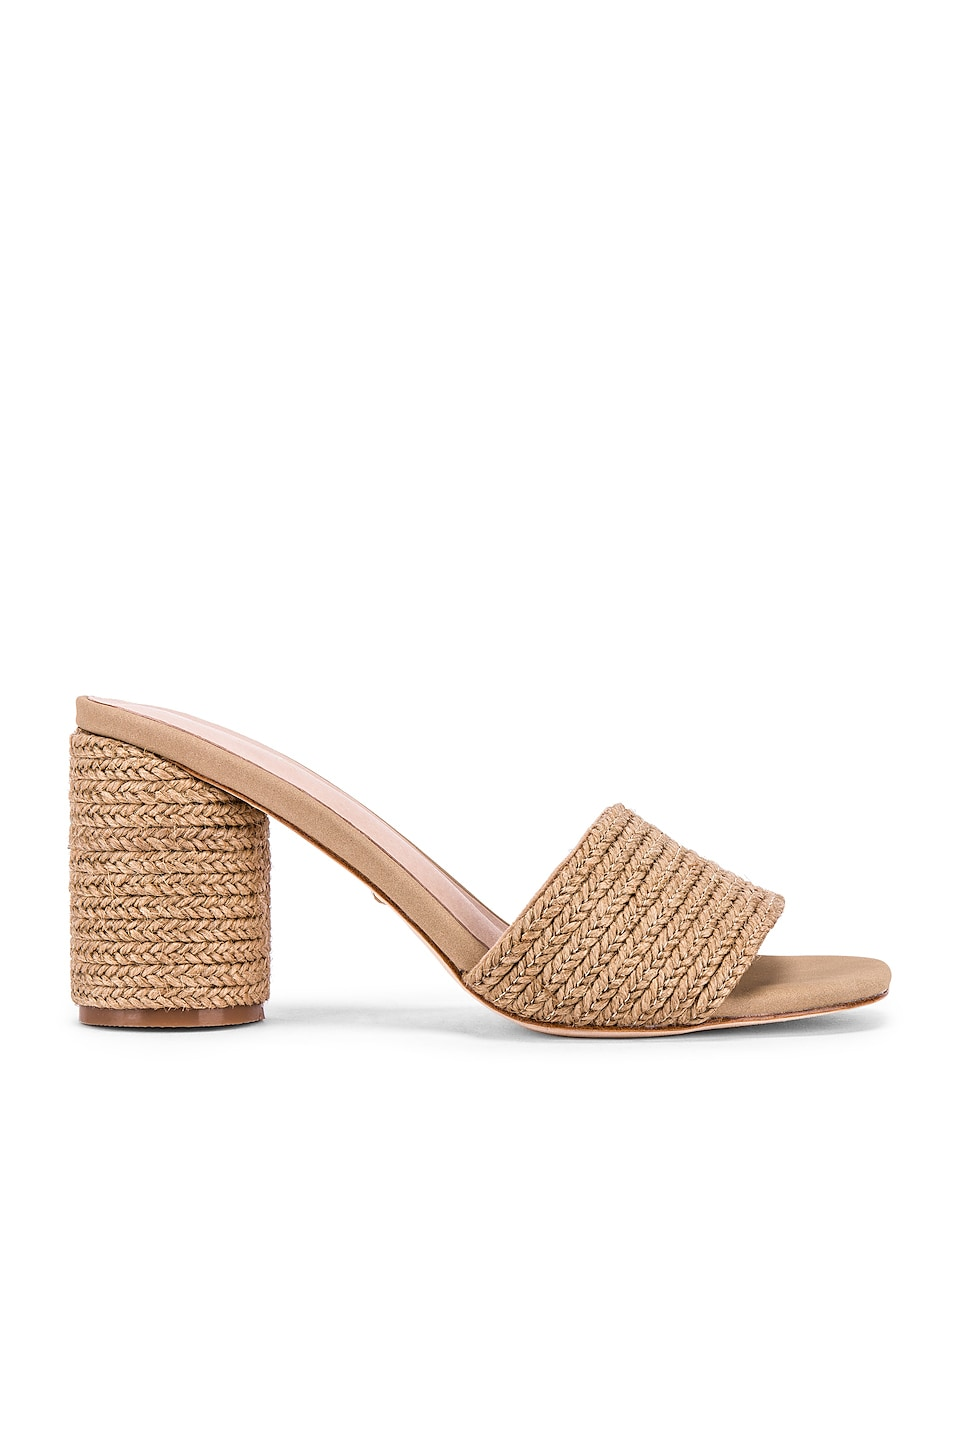 RAYE Sookies Heel in Tan